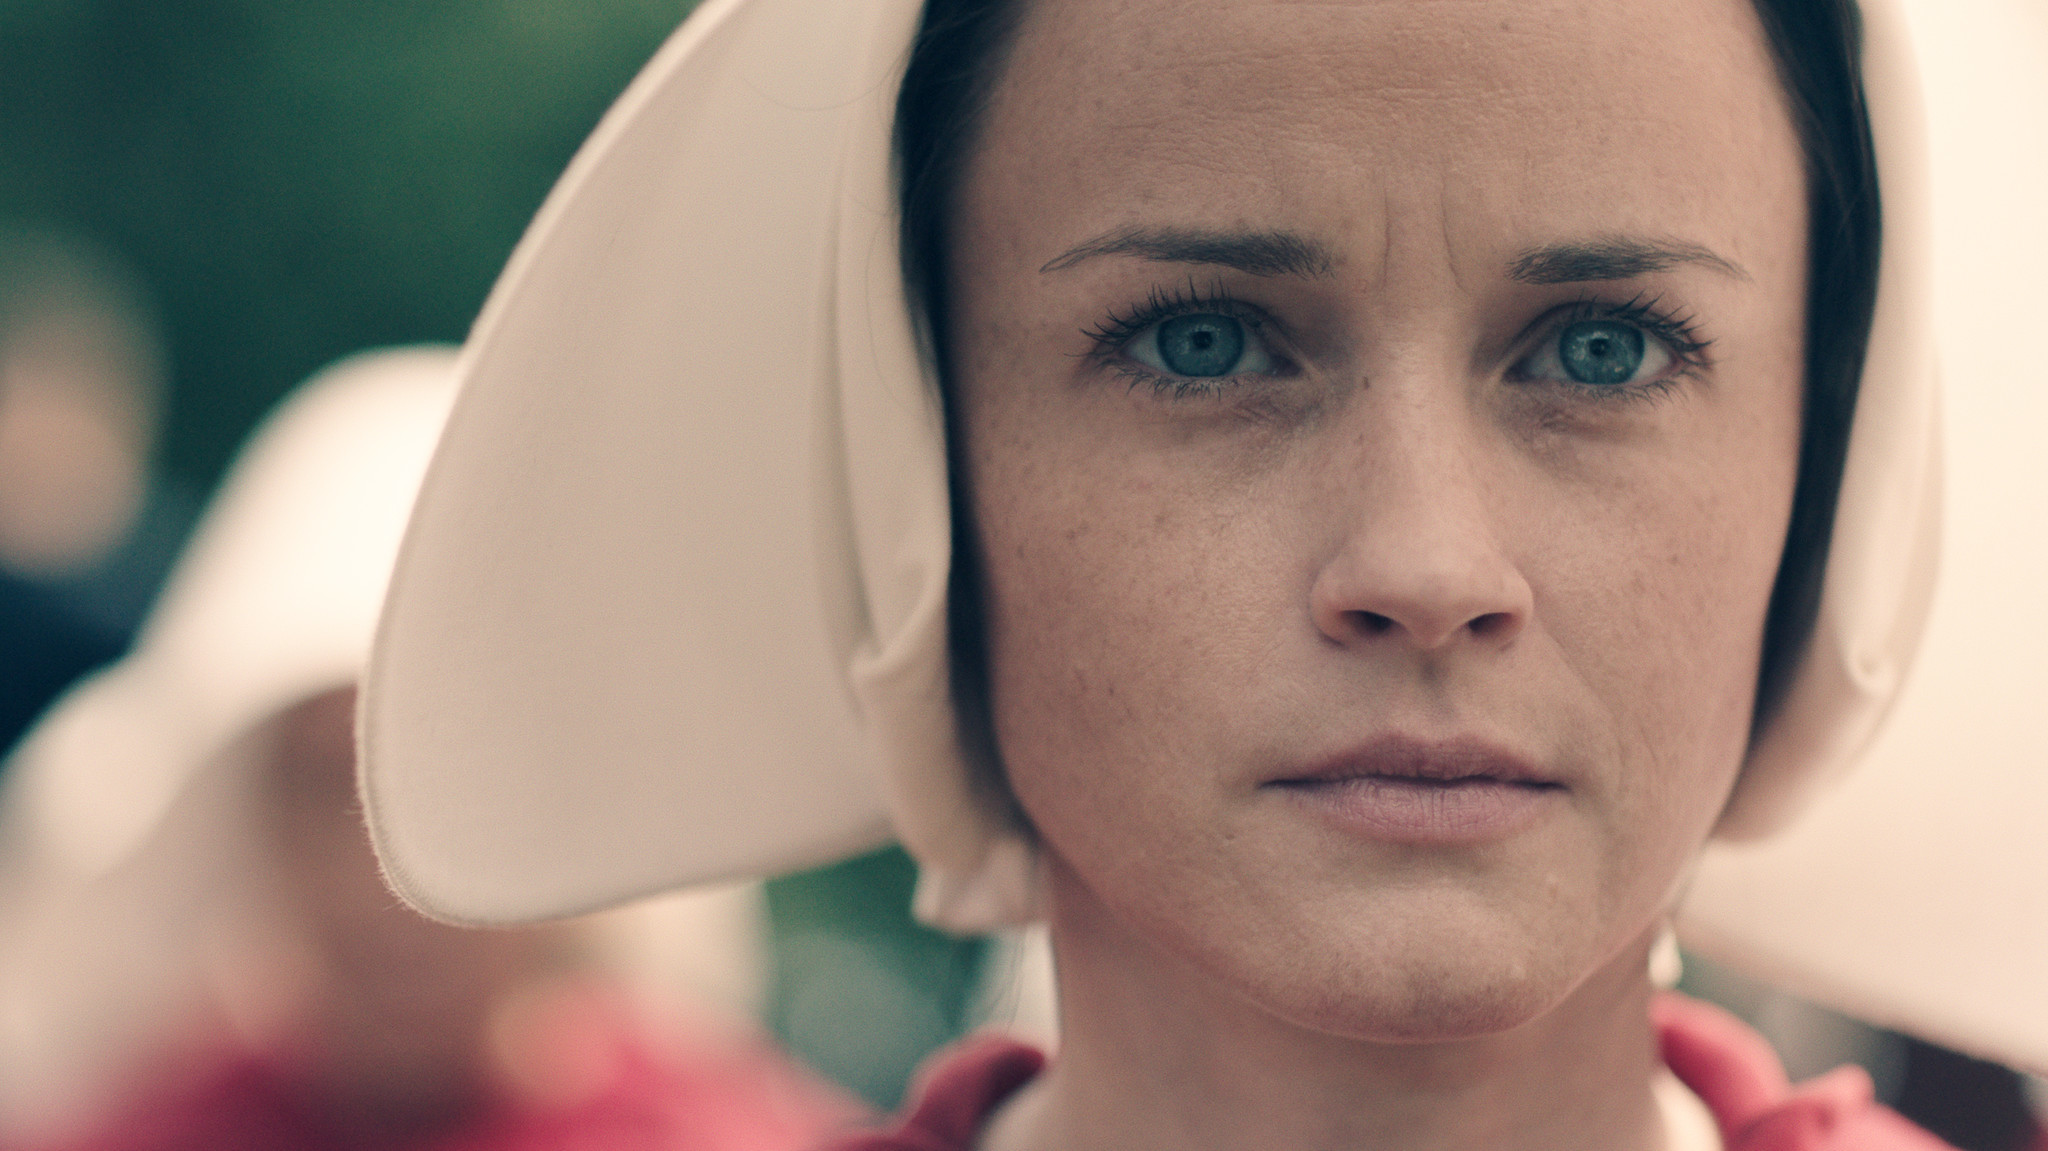 This promotional shot featuring Alexis Bledel depicts the layering of the caplet and wings.